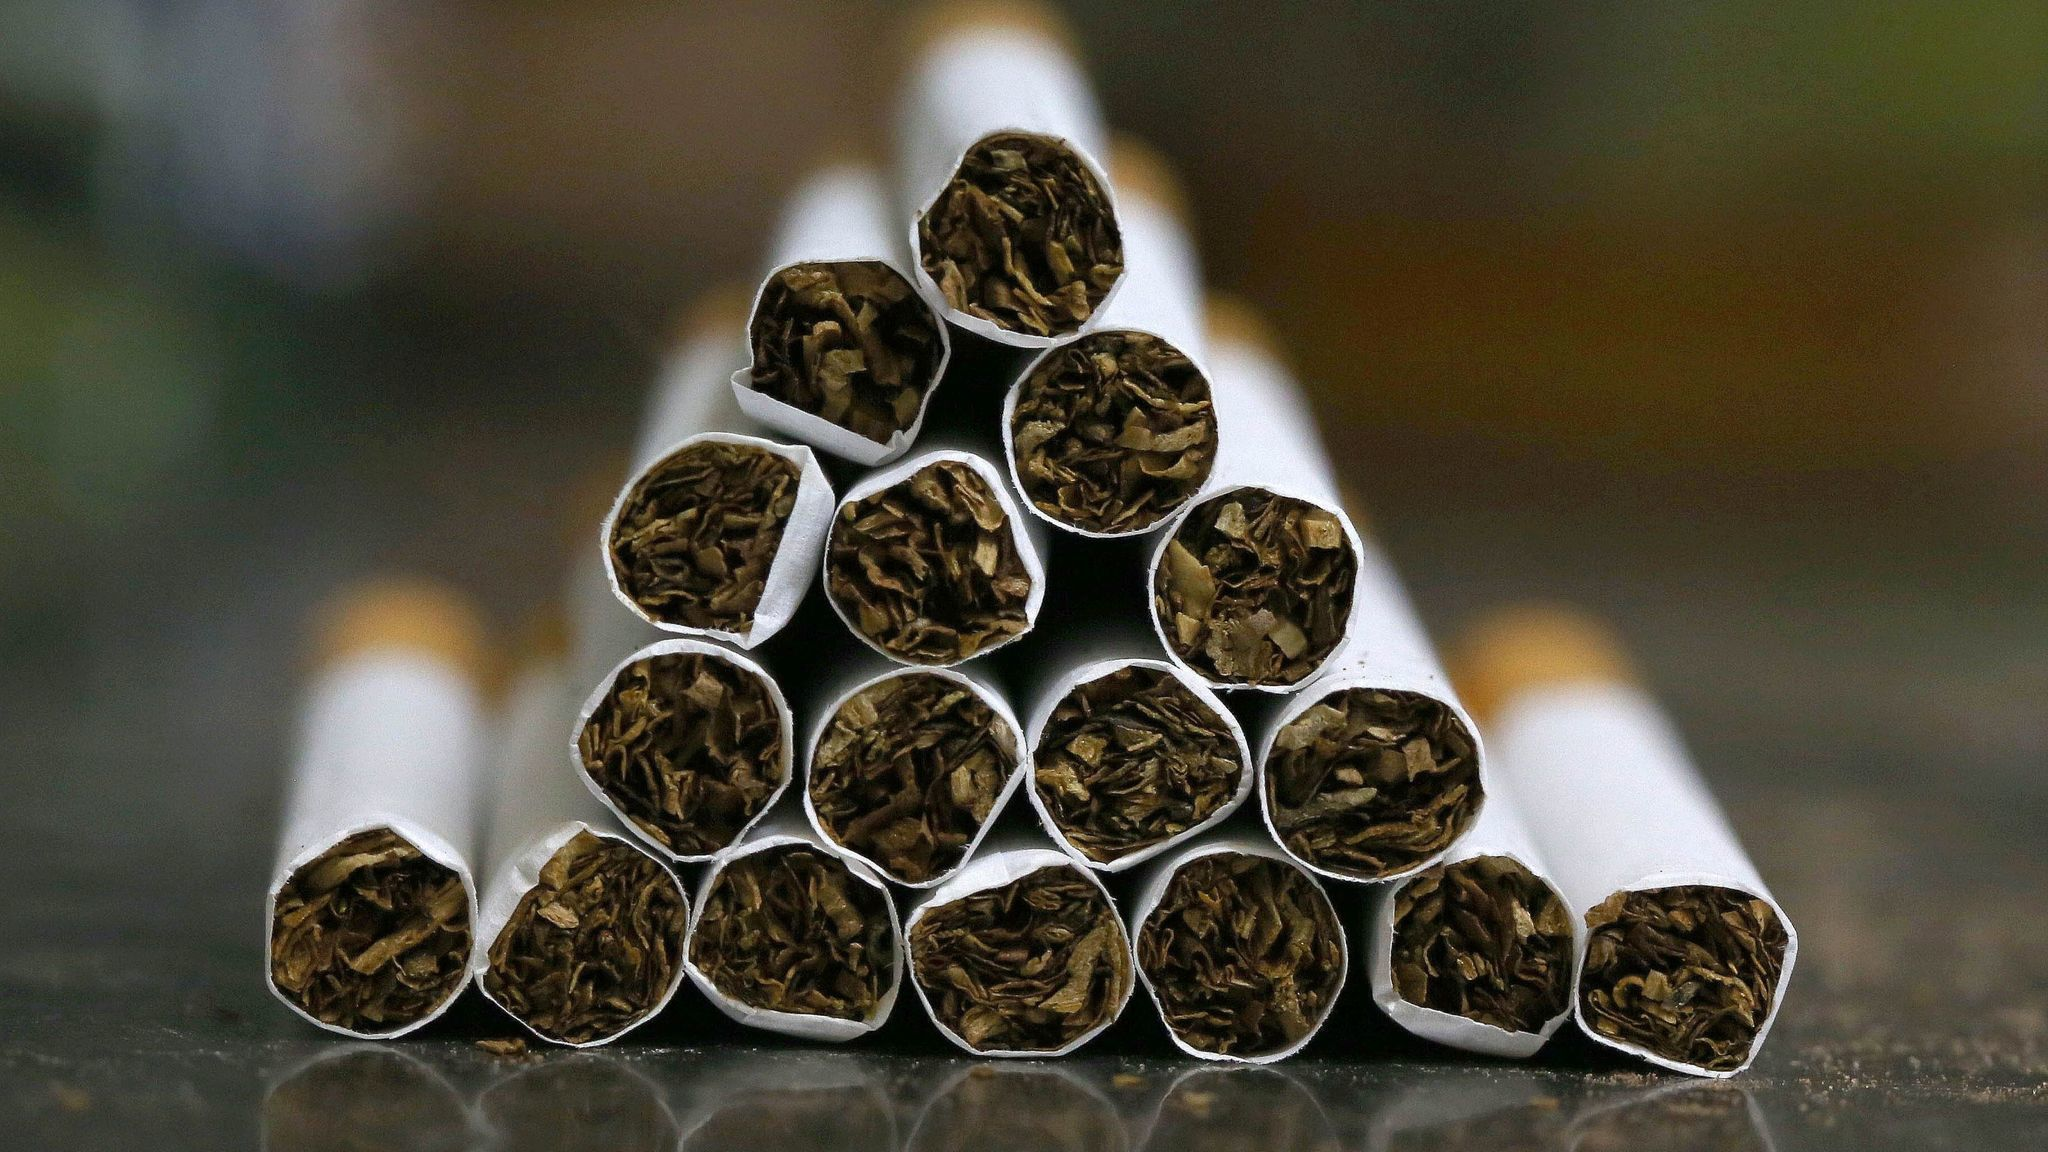 FDA commissioner promotes effort to reduce nicotine in cigarettes to Baltimore audience